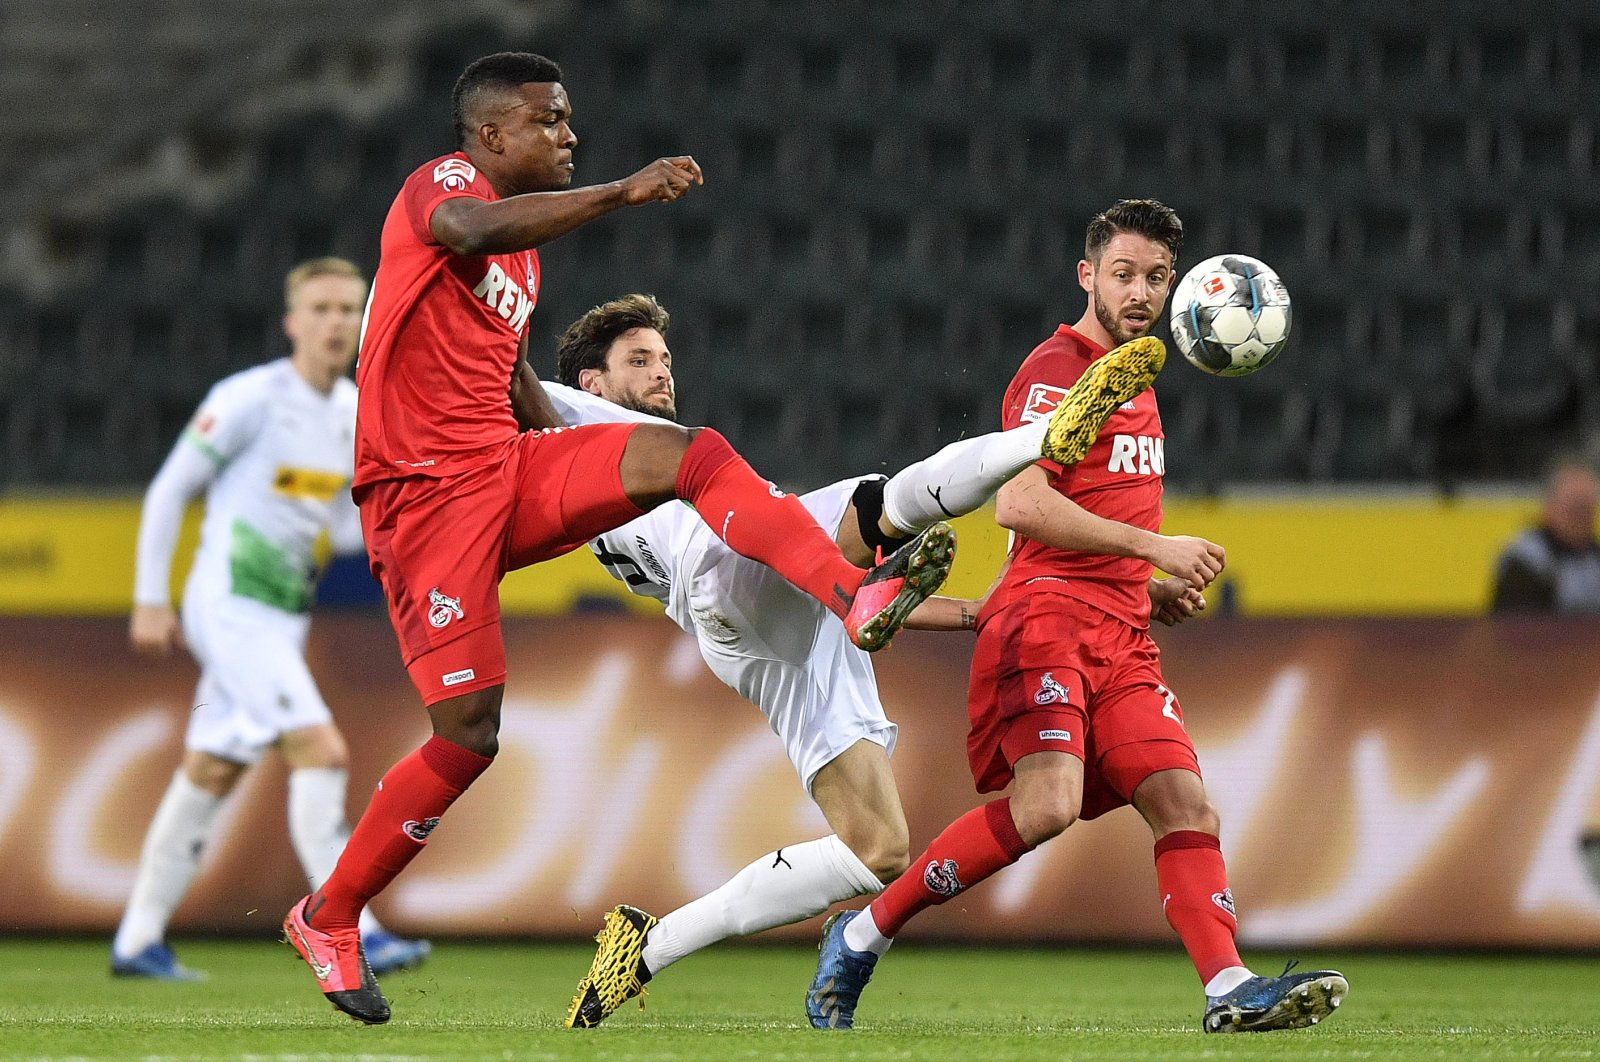 Cologne's Jhon Cordoba and Moenchengladbach's Tobias Strobl challenge for the ball during a Bundesliga match in Moenchengladbach, Germany, March 11, 2020. (AP Photo)